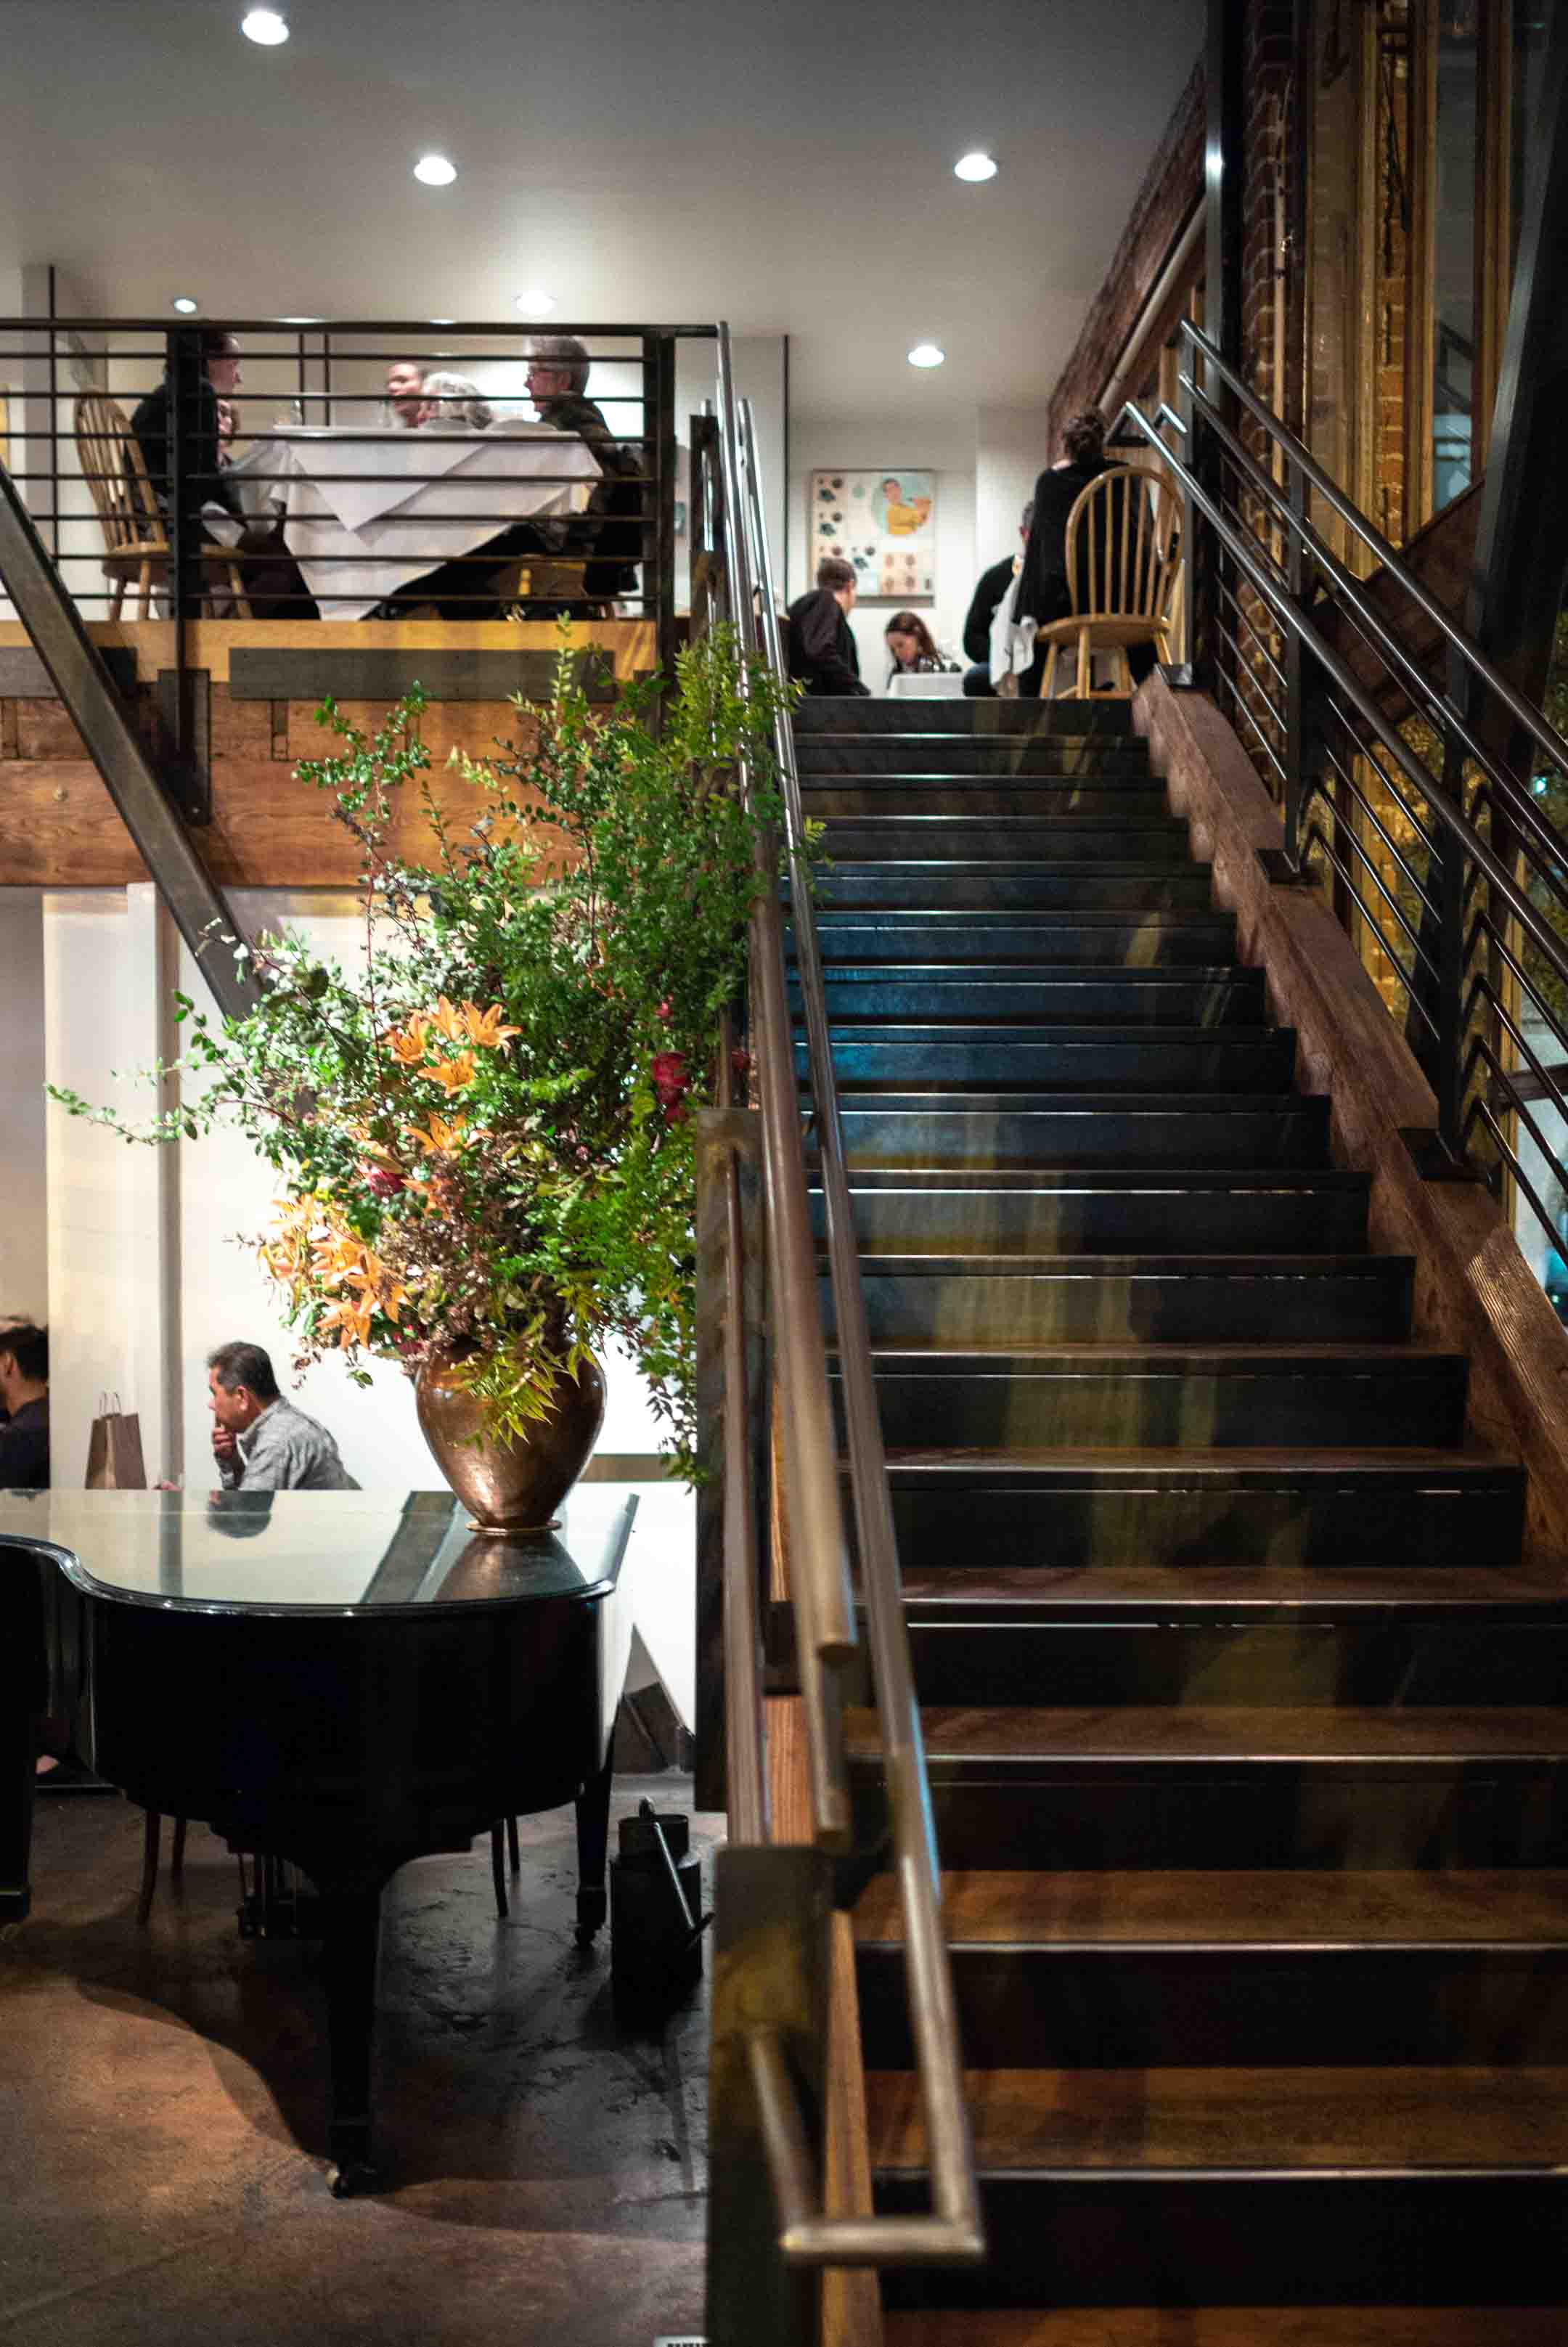 Walk into Zuni Cafe to find a San Francisco restaurant gem you'll be glad you went!